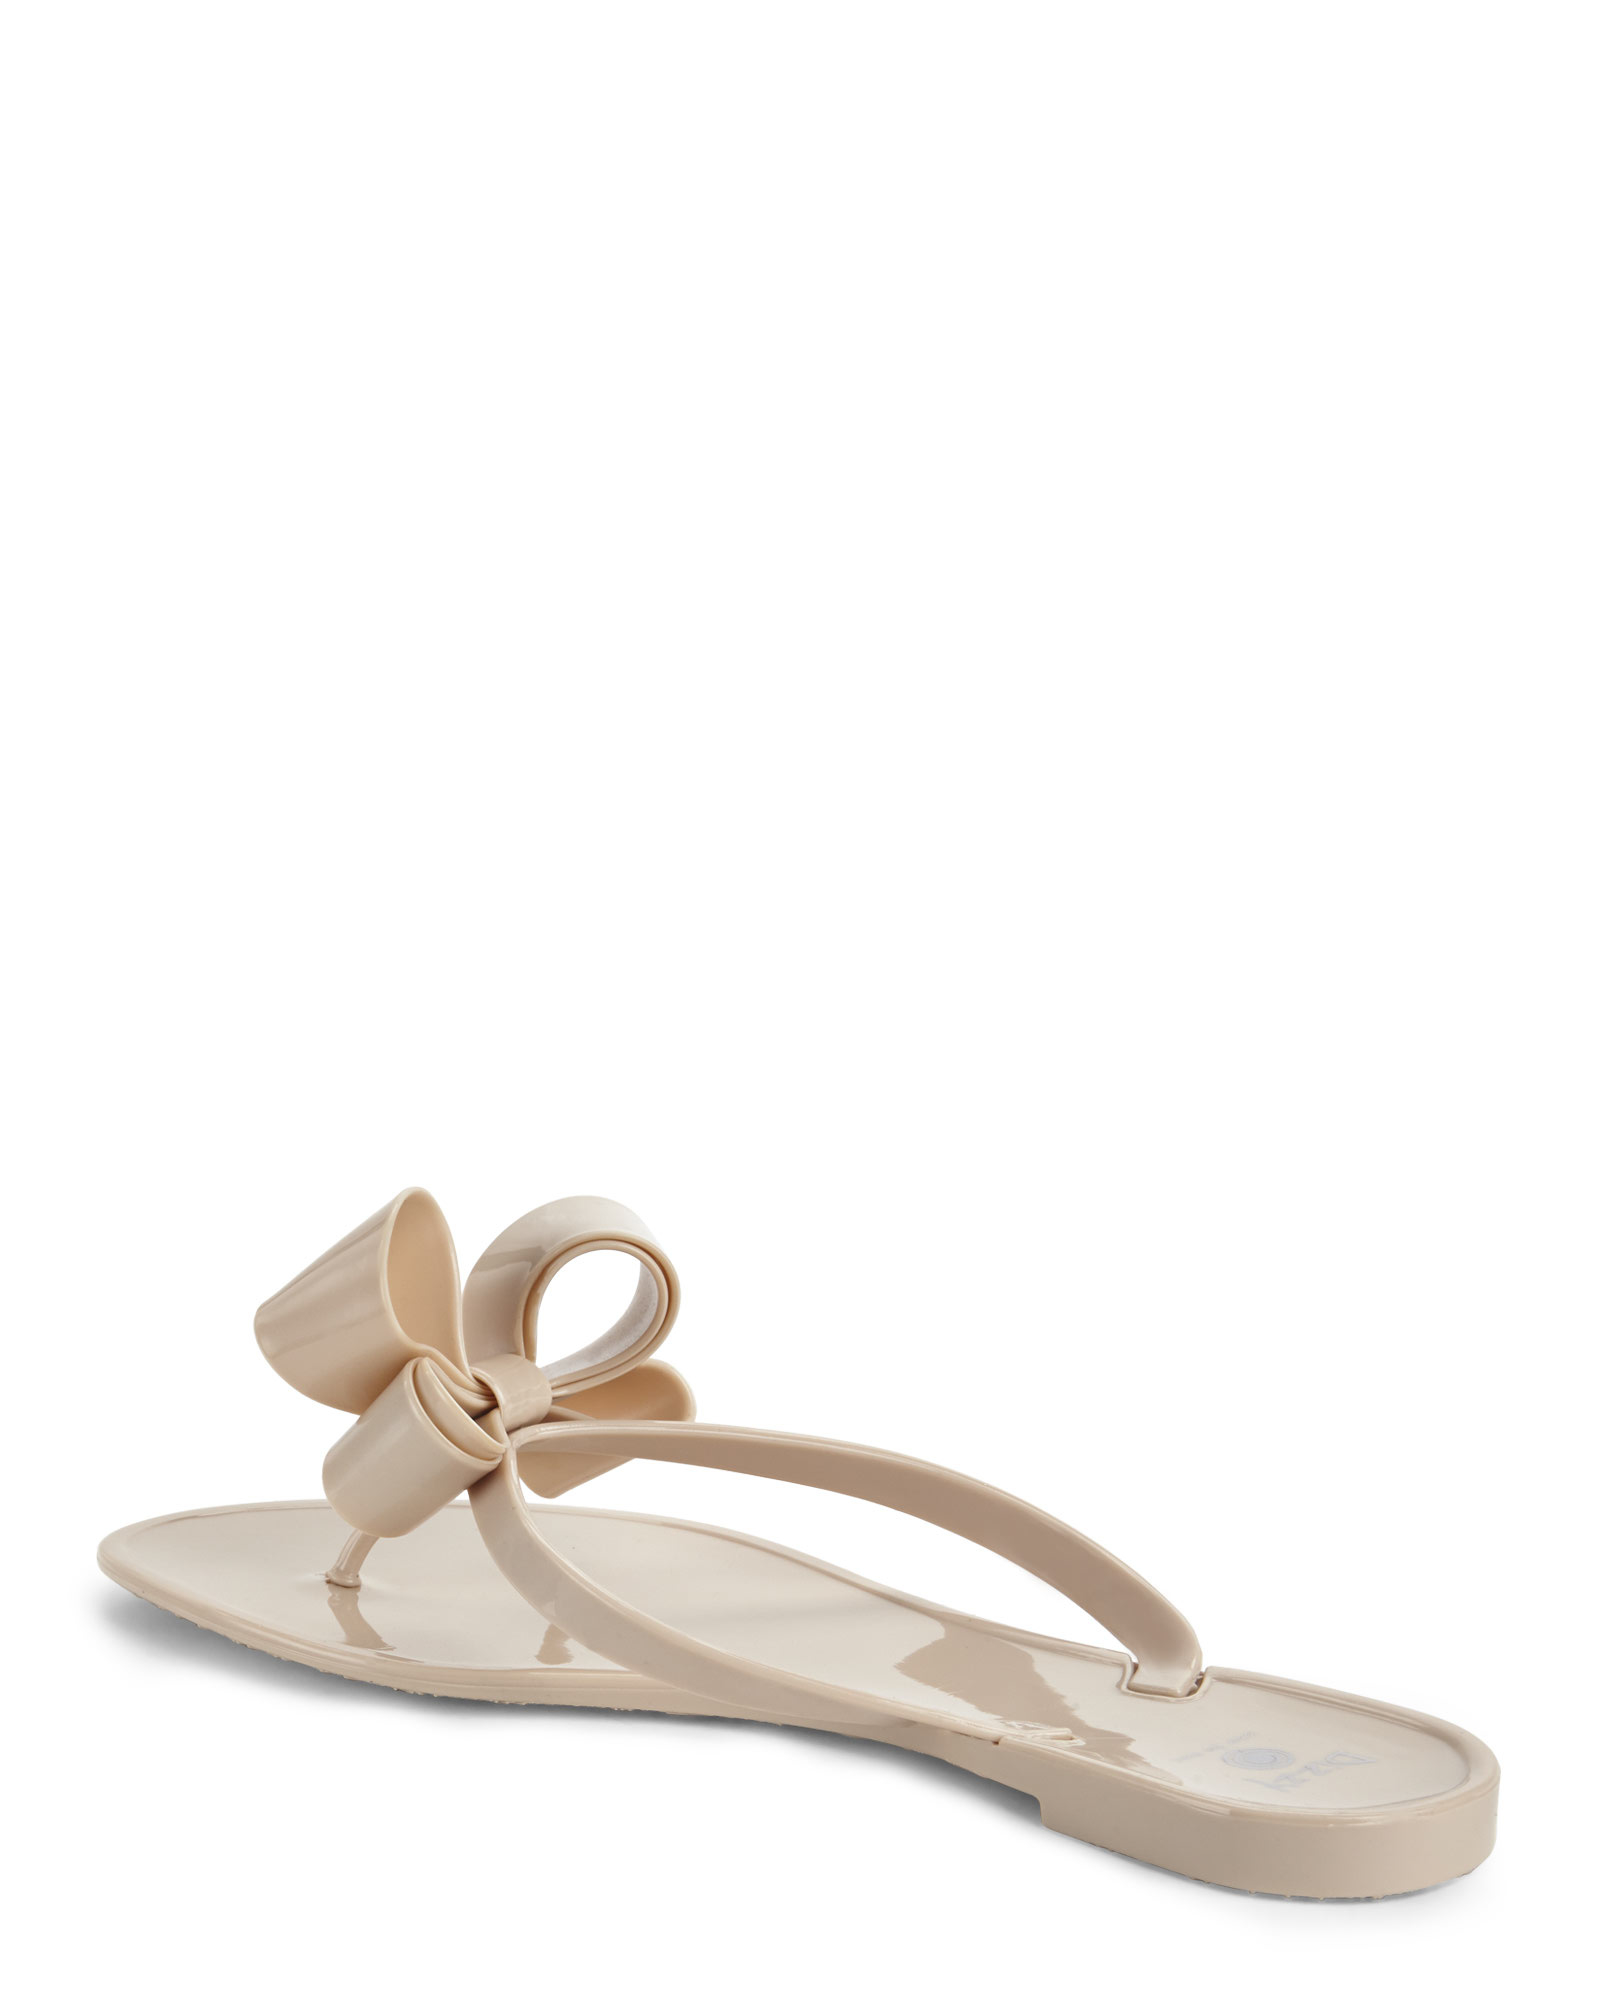 54e897d948e7 Lyst - Dizzy Bow Embellished Thong Sandals in Natural